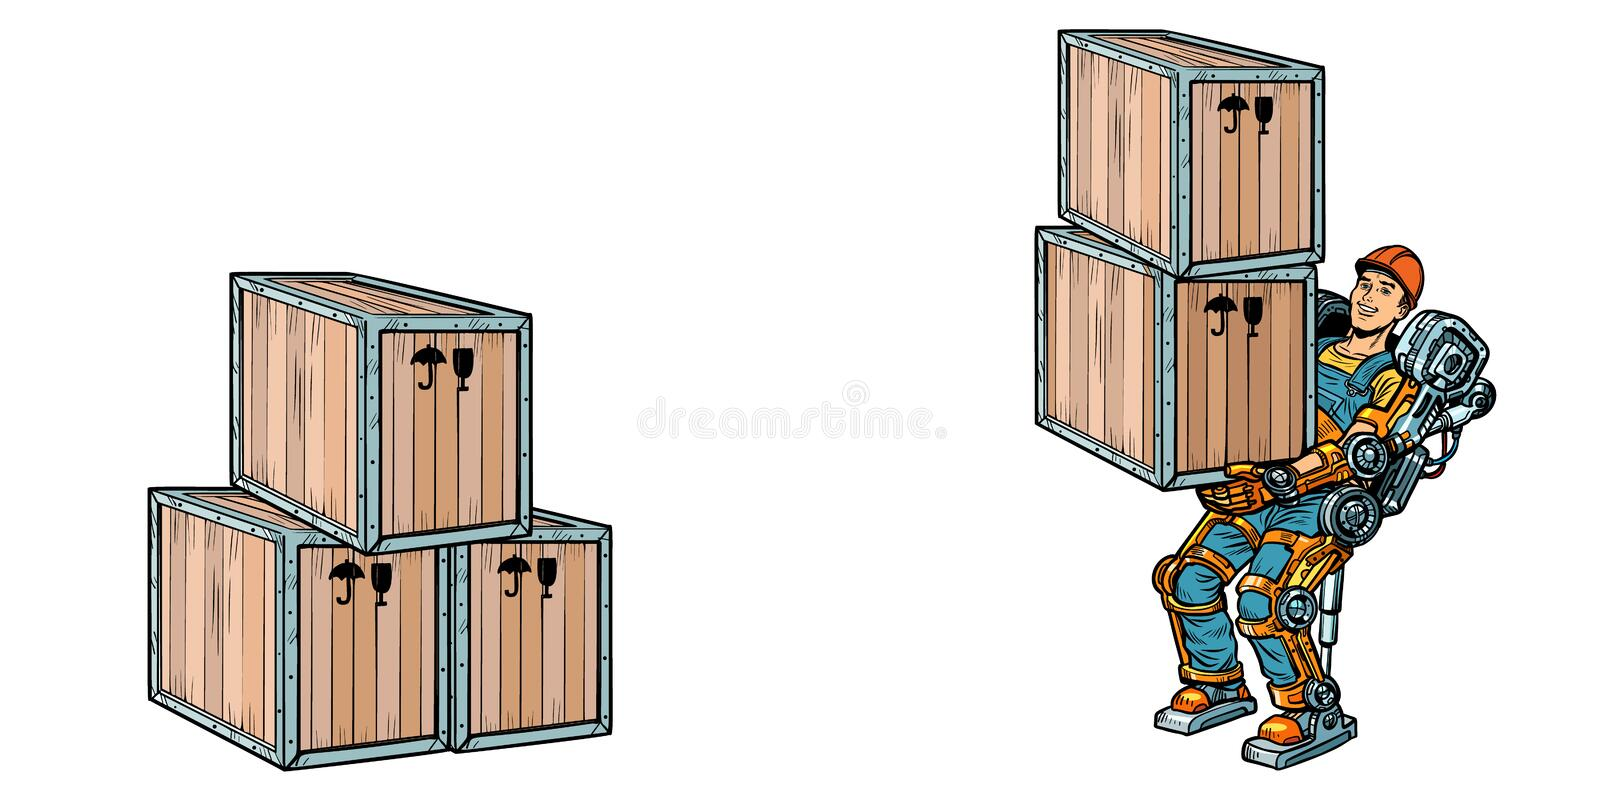 Container loading. A man works in the exoskeleton exoskeleton. Pop art retro vector illustration kitsch vintage drawing royalty free illustration